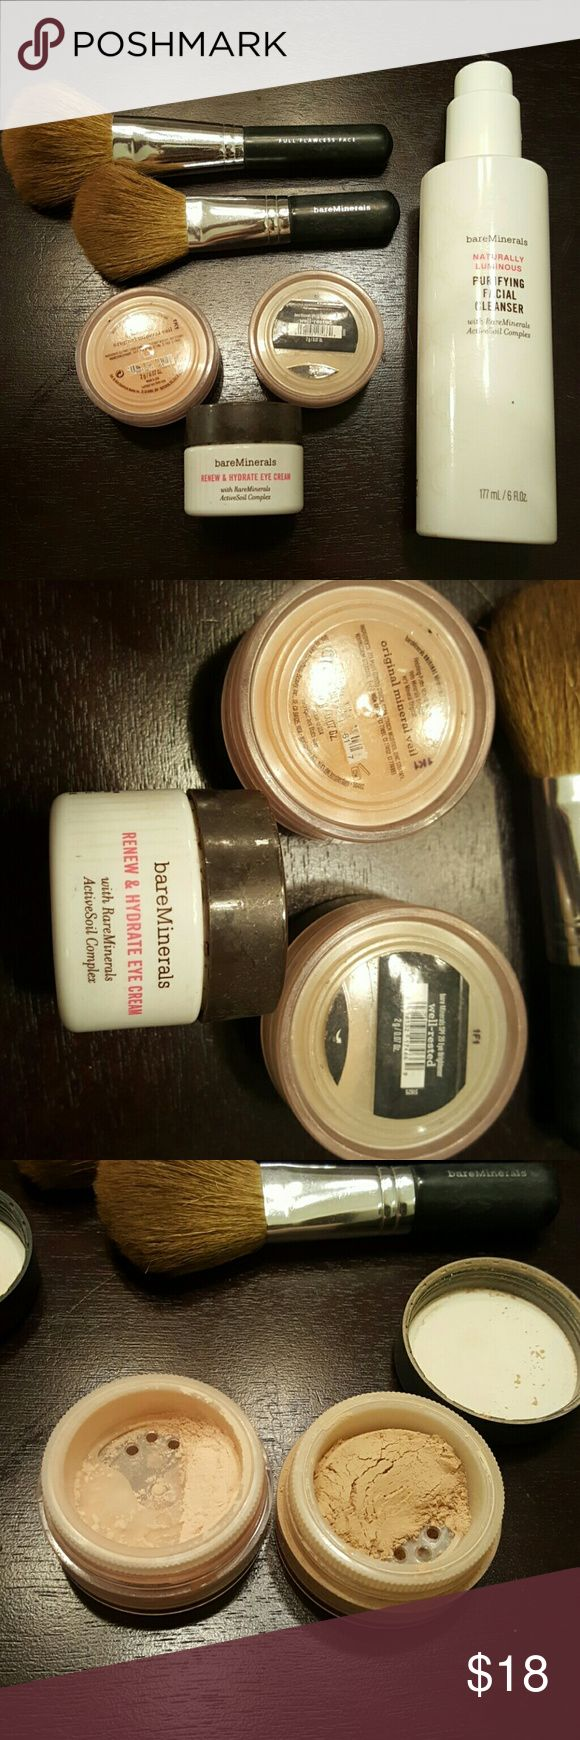 Bare Minerals Set Bought it, tried it, ditched it for full coverage makeup.  Still a great product, but didn't match my style.  About 2/3 left in containers, all disinfected Makeup